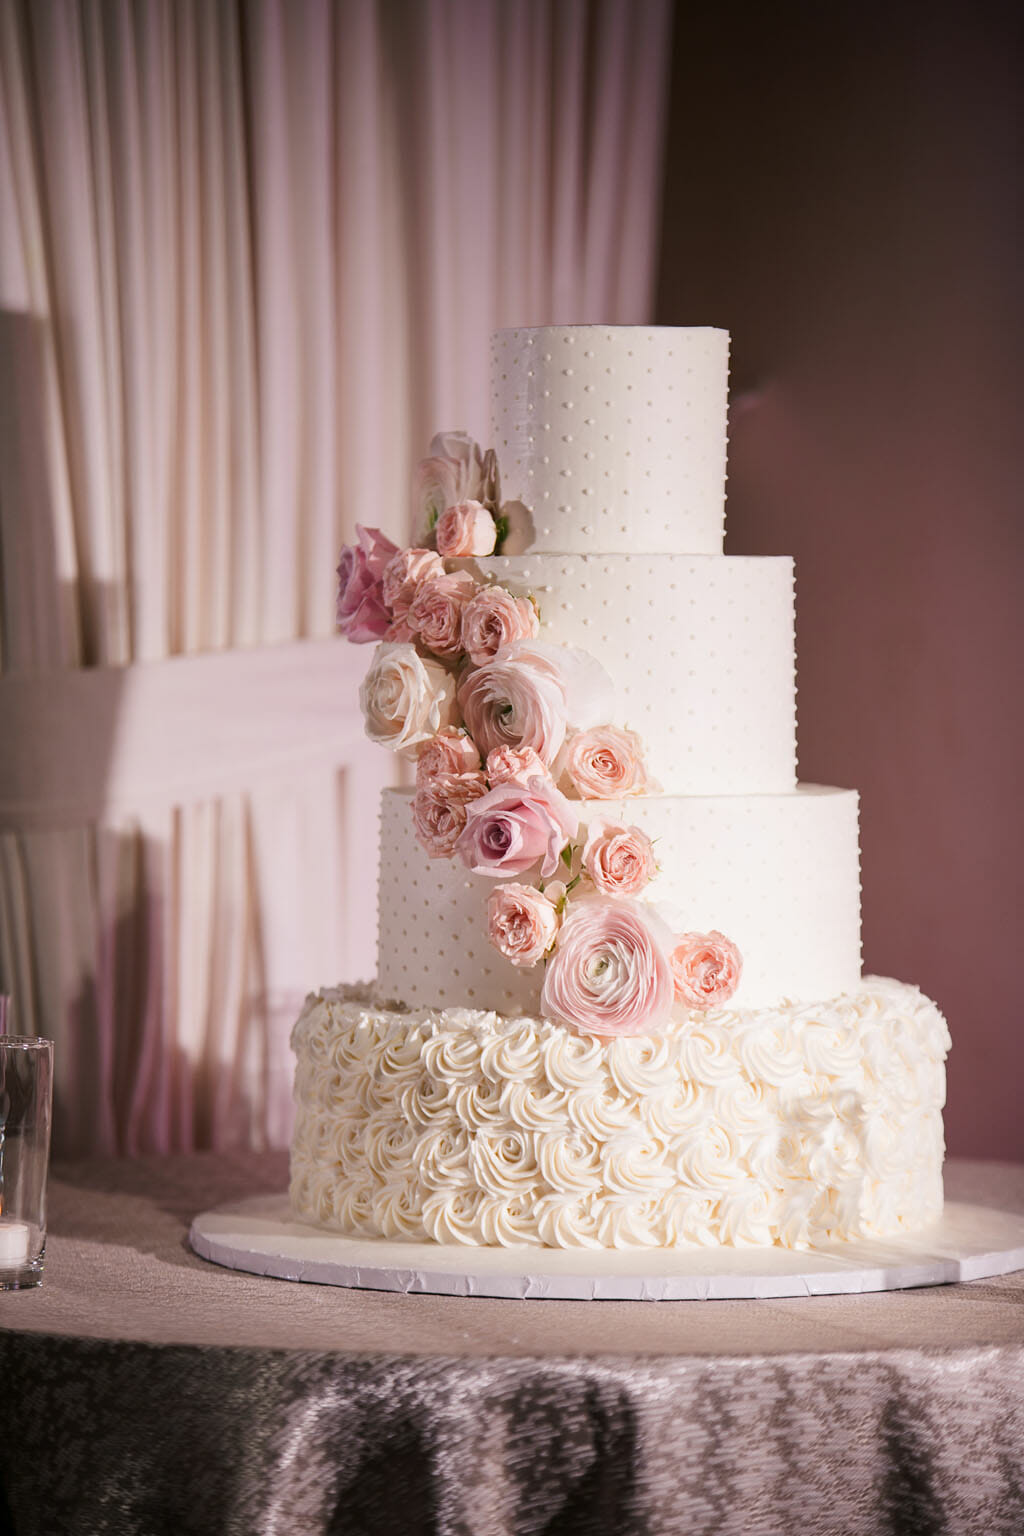 blush wedding cake with floral design